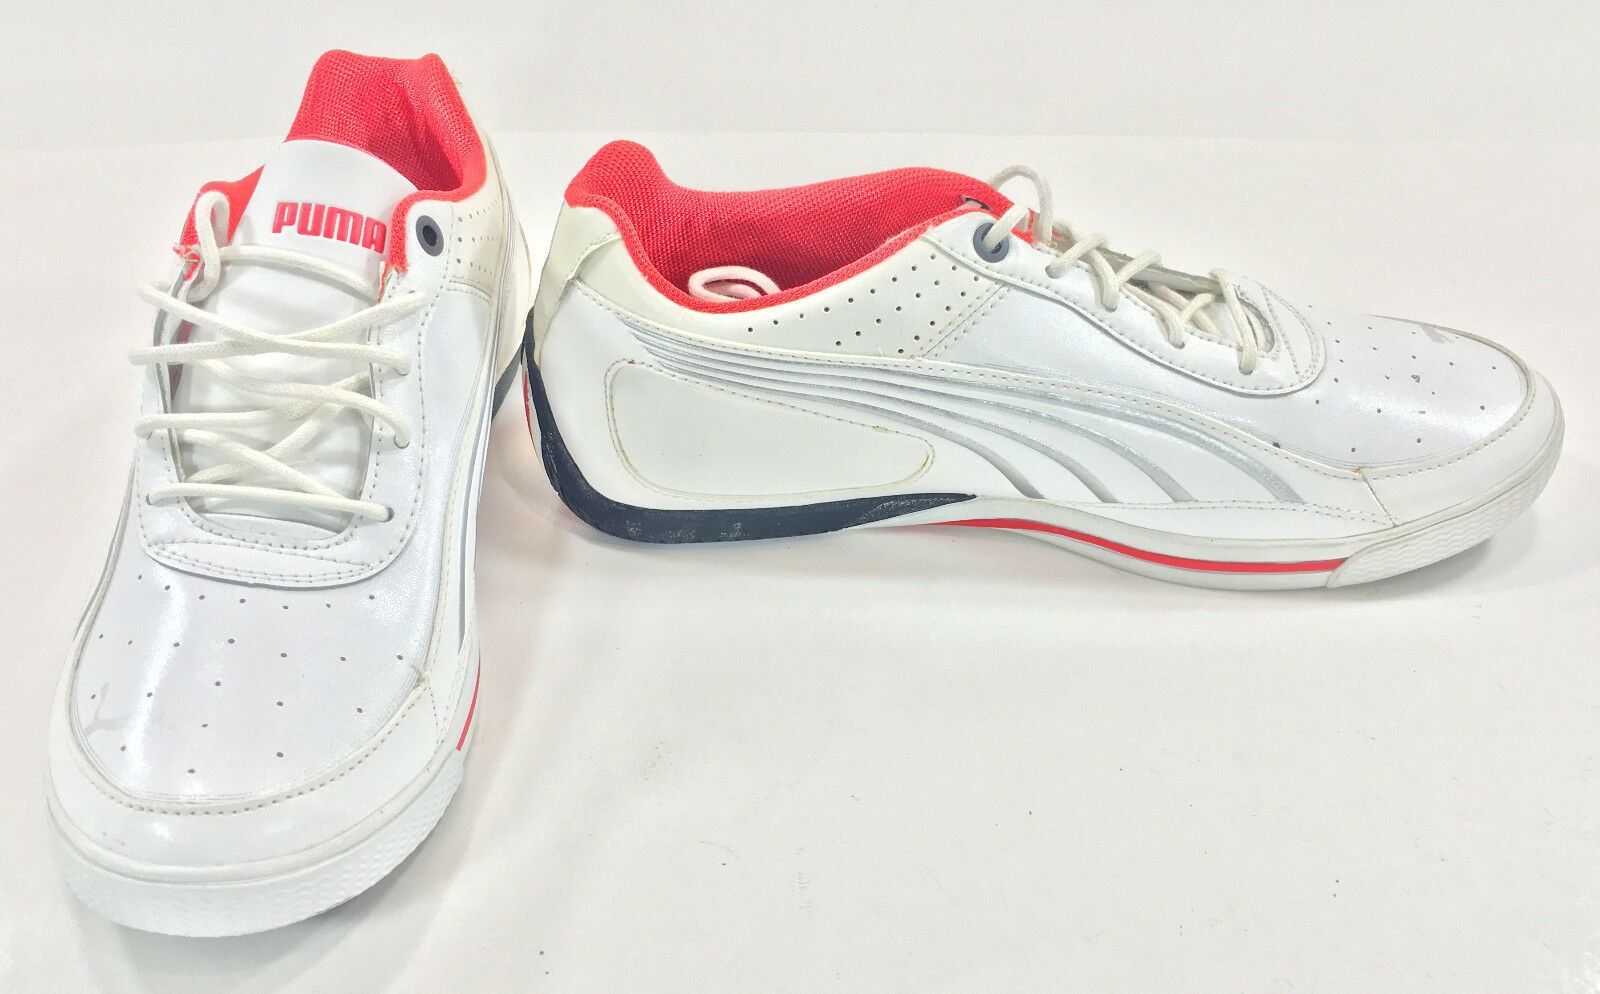 Puma shoes SL Street Lo Basic White Red Silver Sneakers Size 8